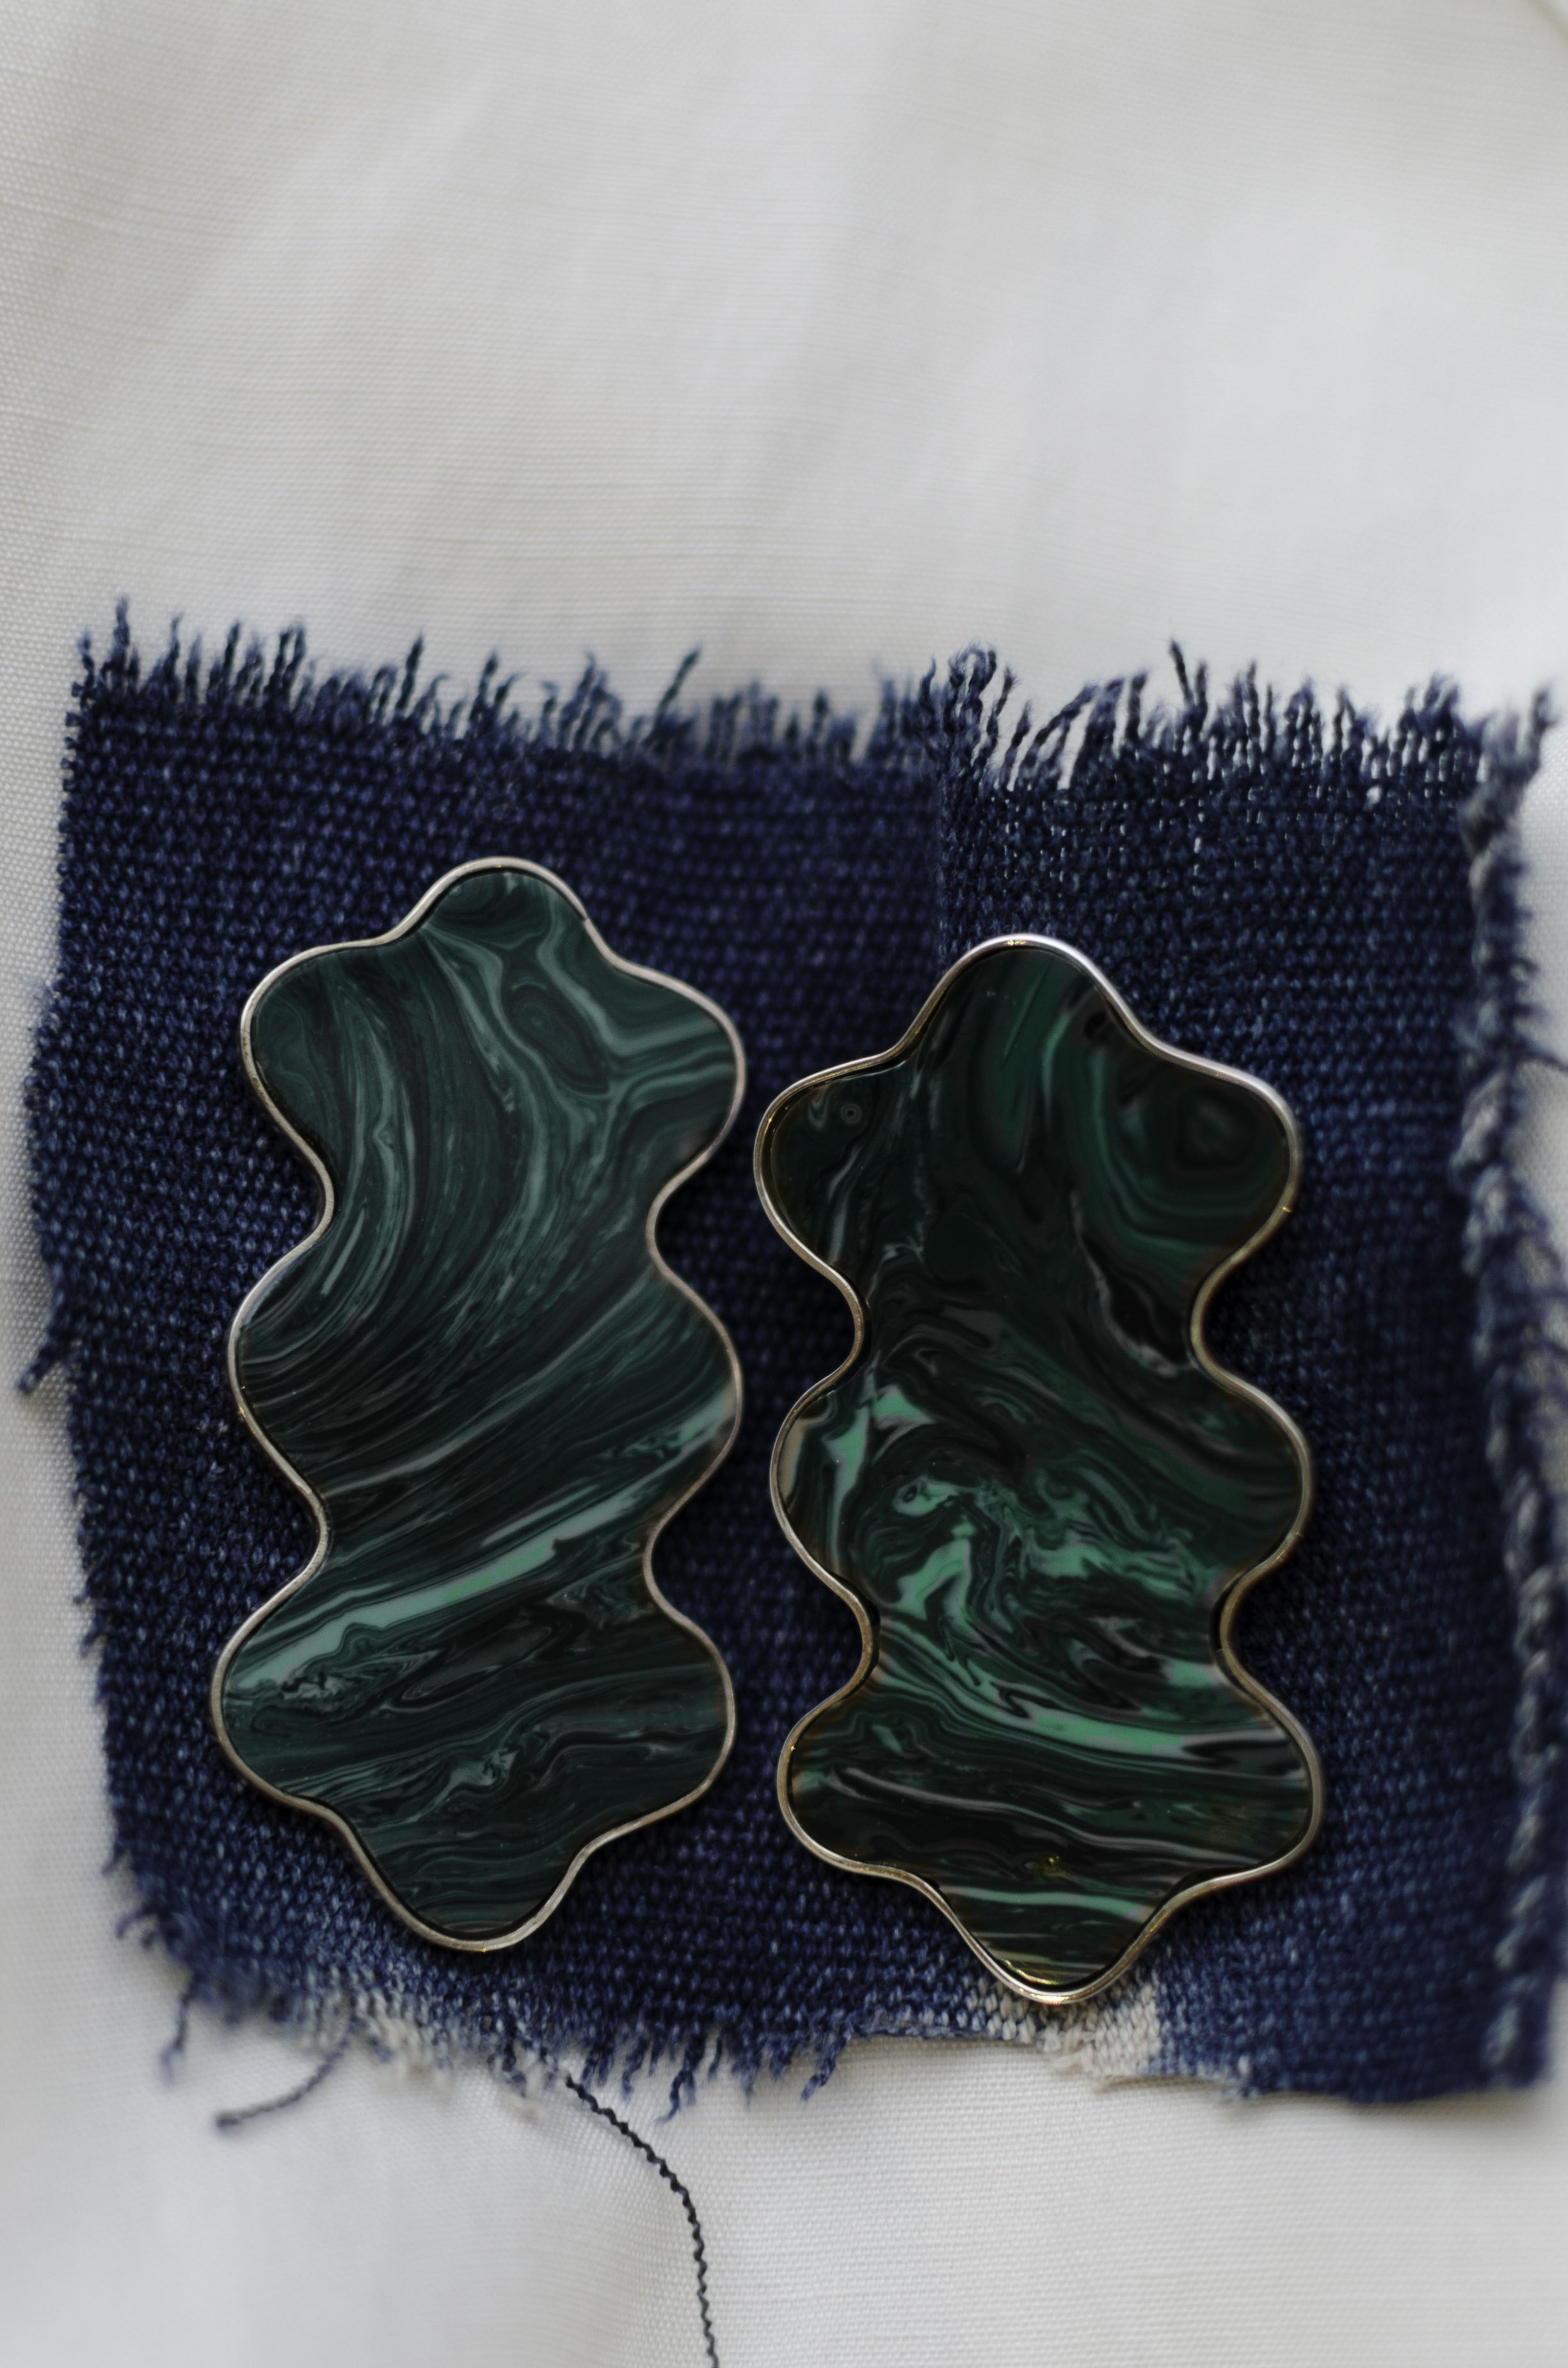 Gala Is Love MalachiteLava Earrings - These beauties are handmade in Mexico using Malachite and Sterling Silver. They're a little spendier at $250 so I'd give them to someone close.